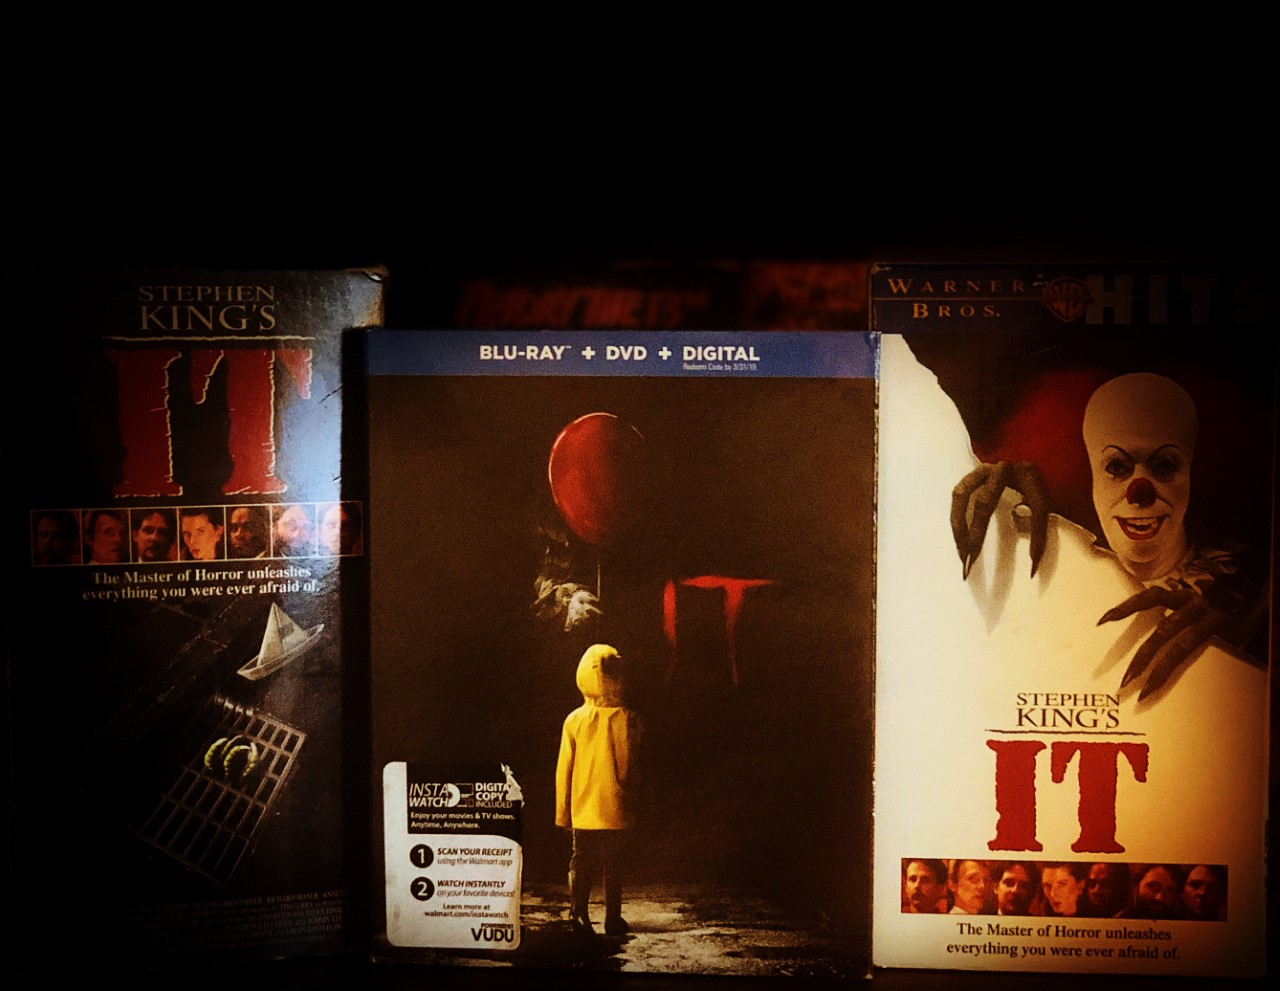 5 Reasons Why: The Original 'IT' is Better than the New One